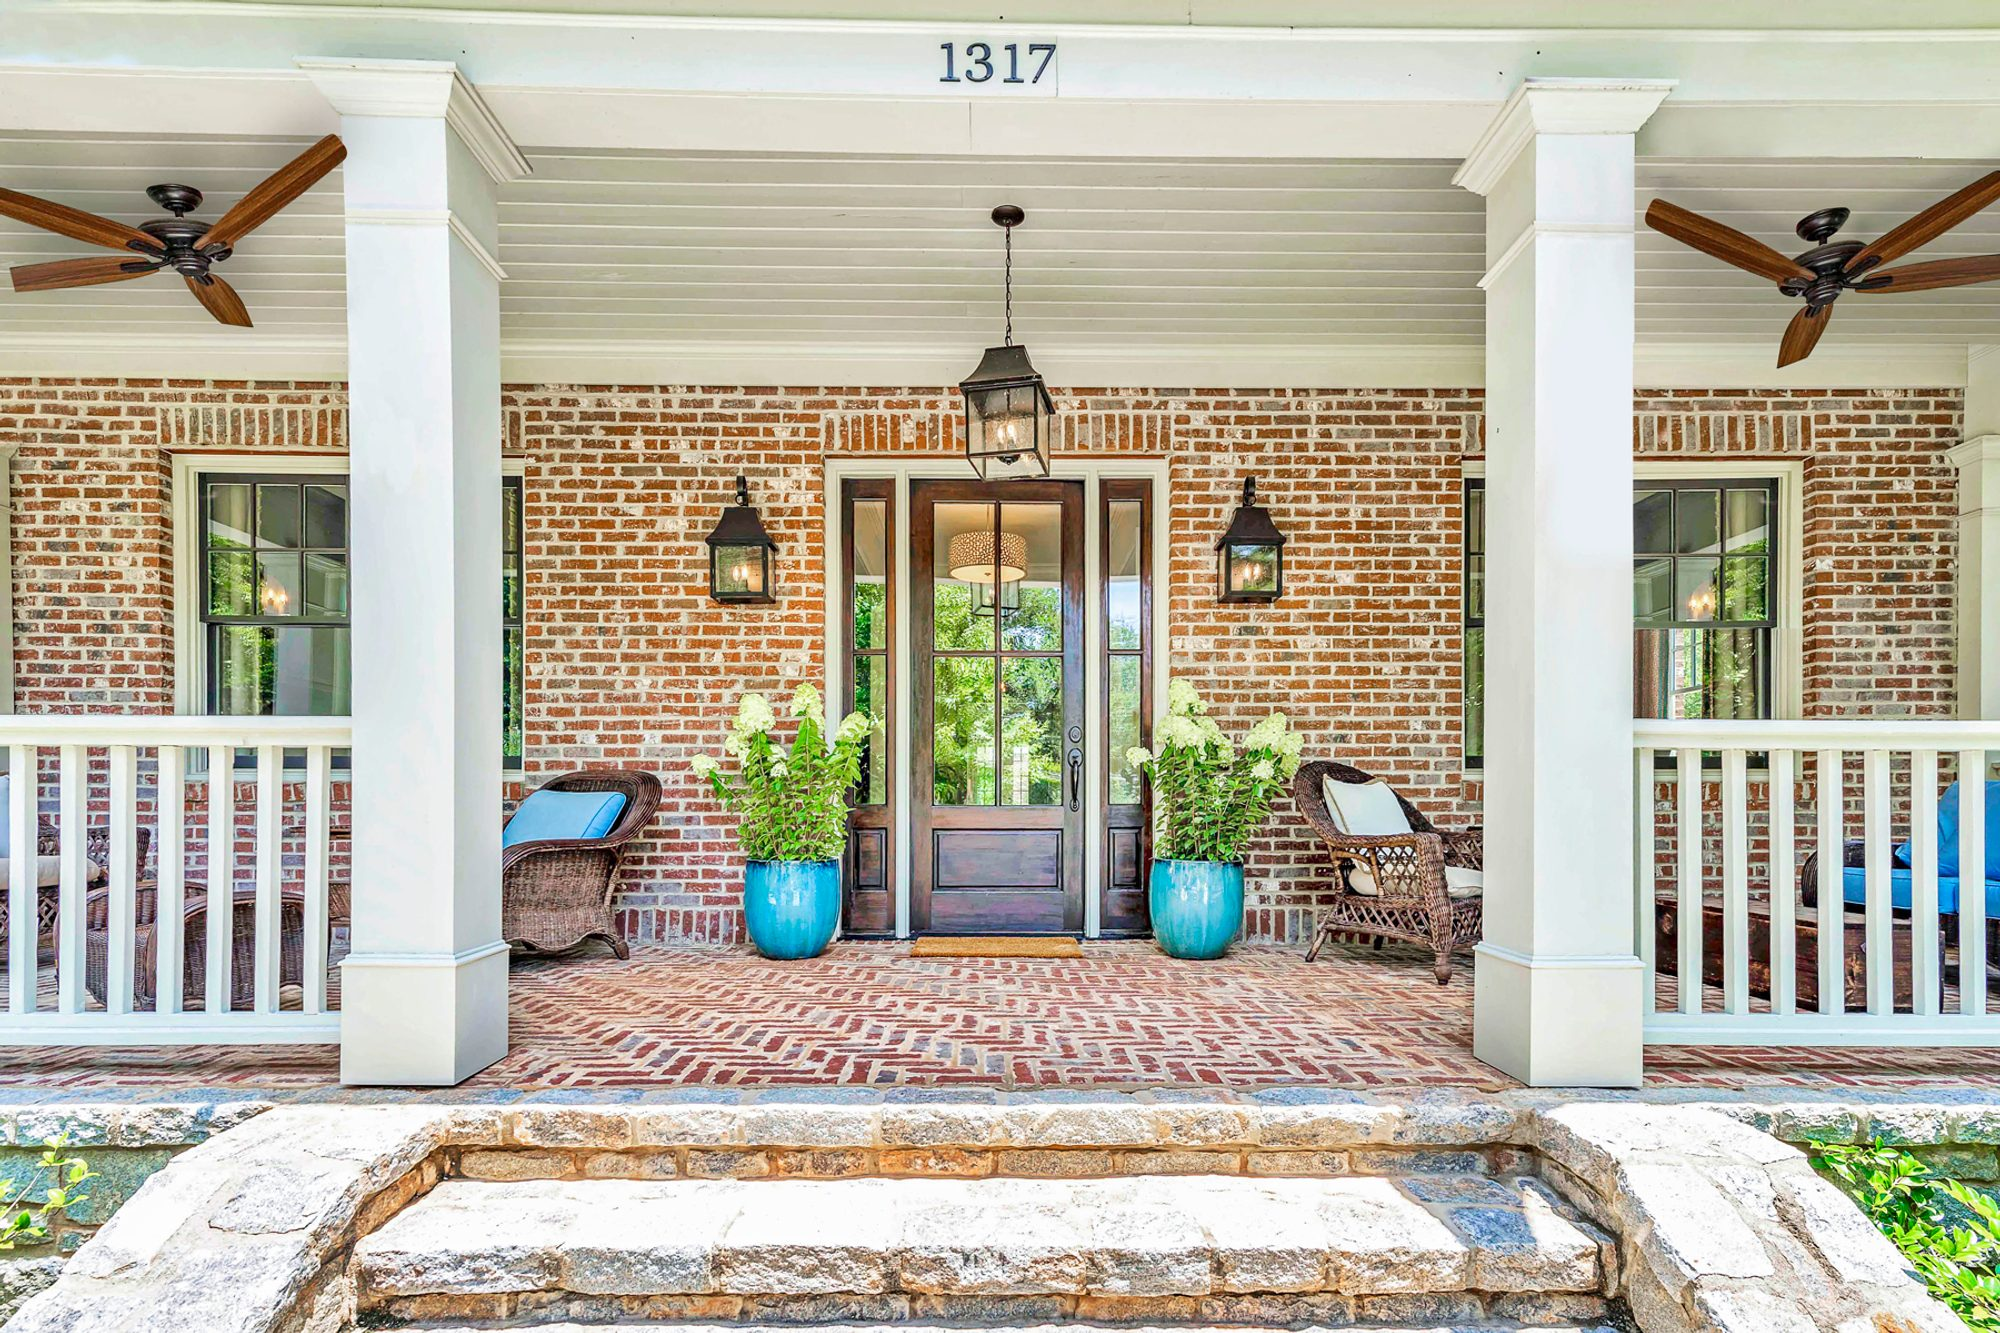 Covered red brick front patio with herringbone pattern and square columns, stone steps. Red brick home with a dark wood front door.